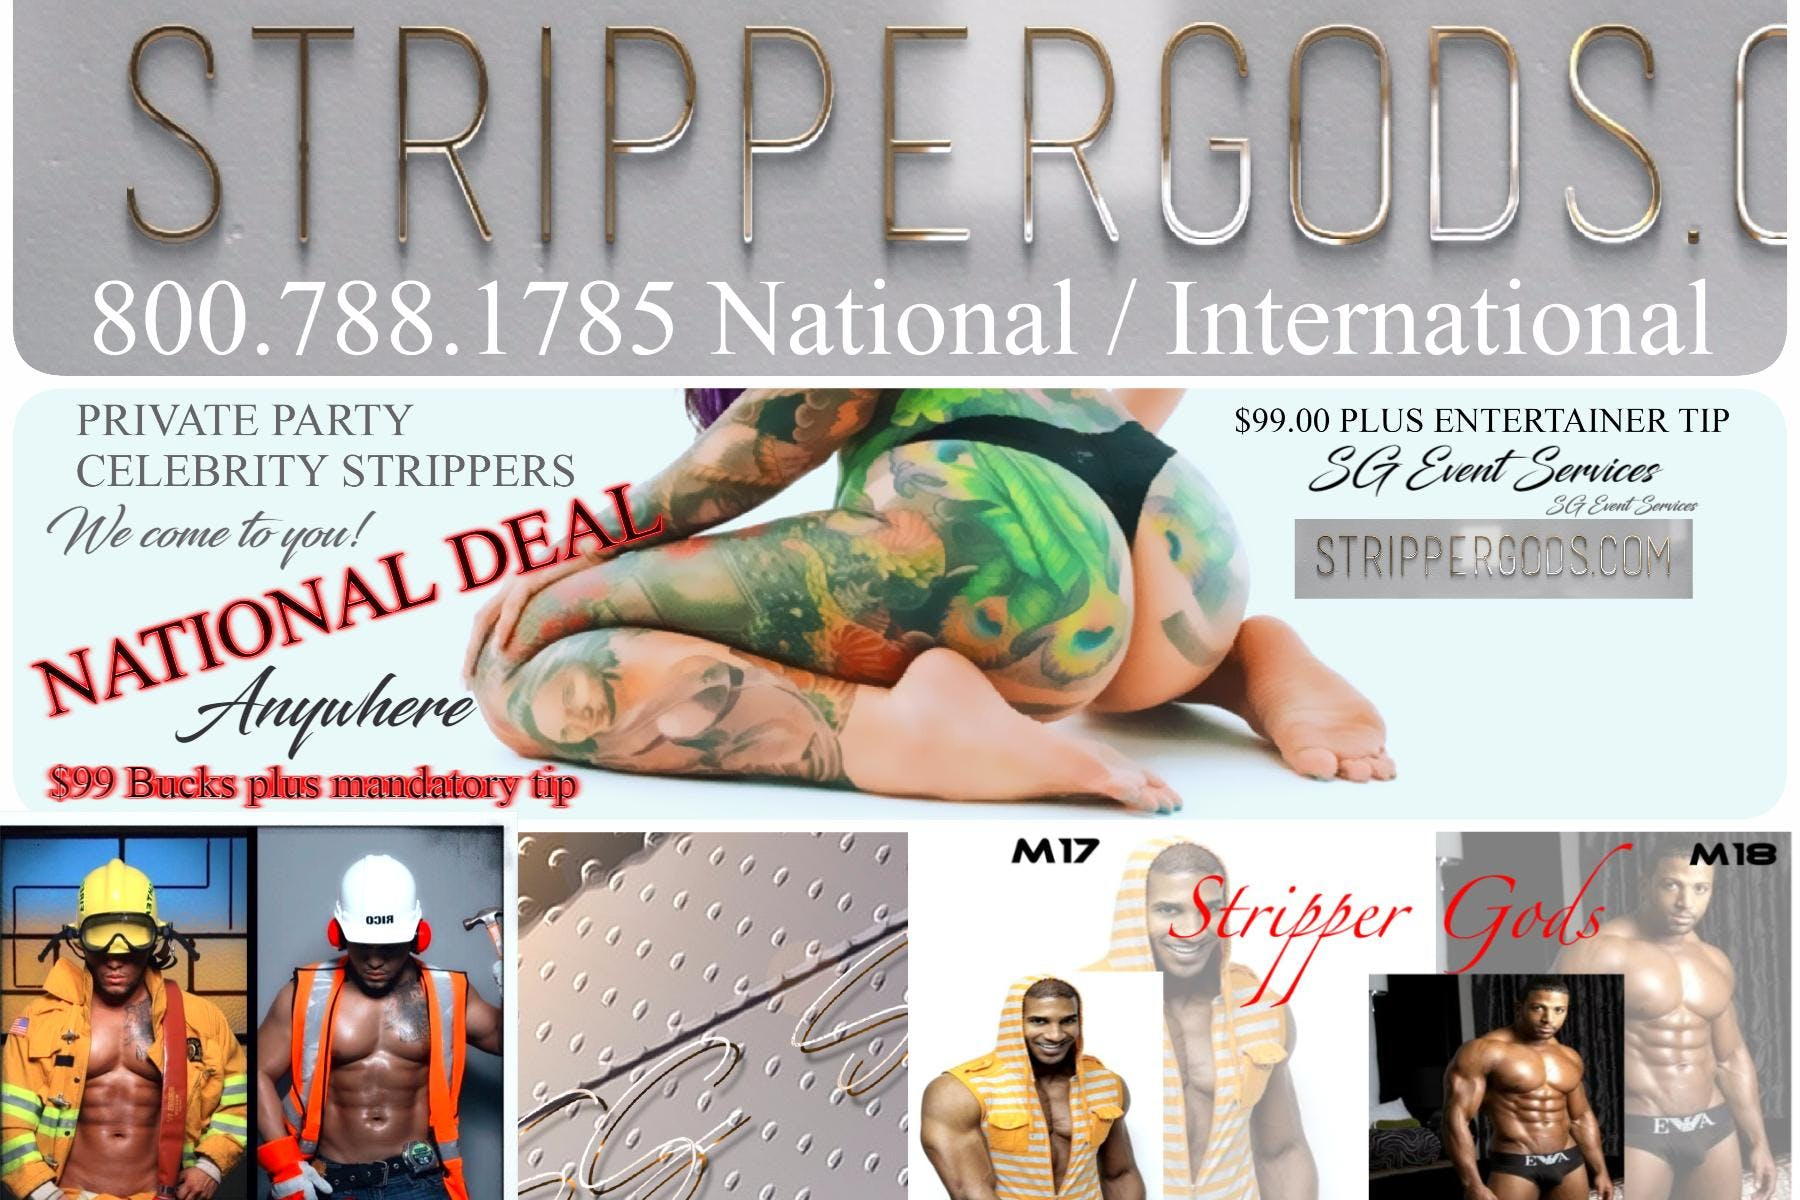 NYC Strippers and Black Male Strippers for private parties Strippergods.com